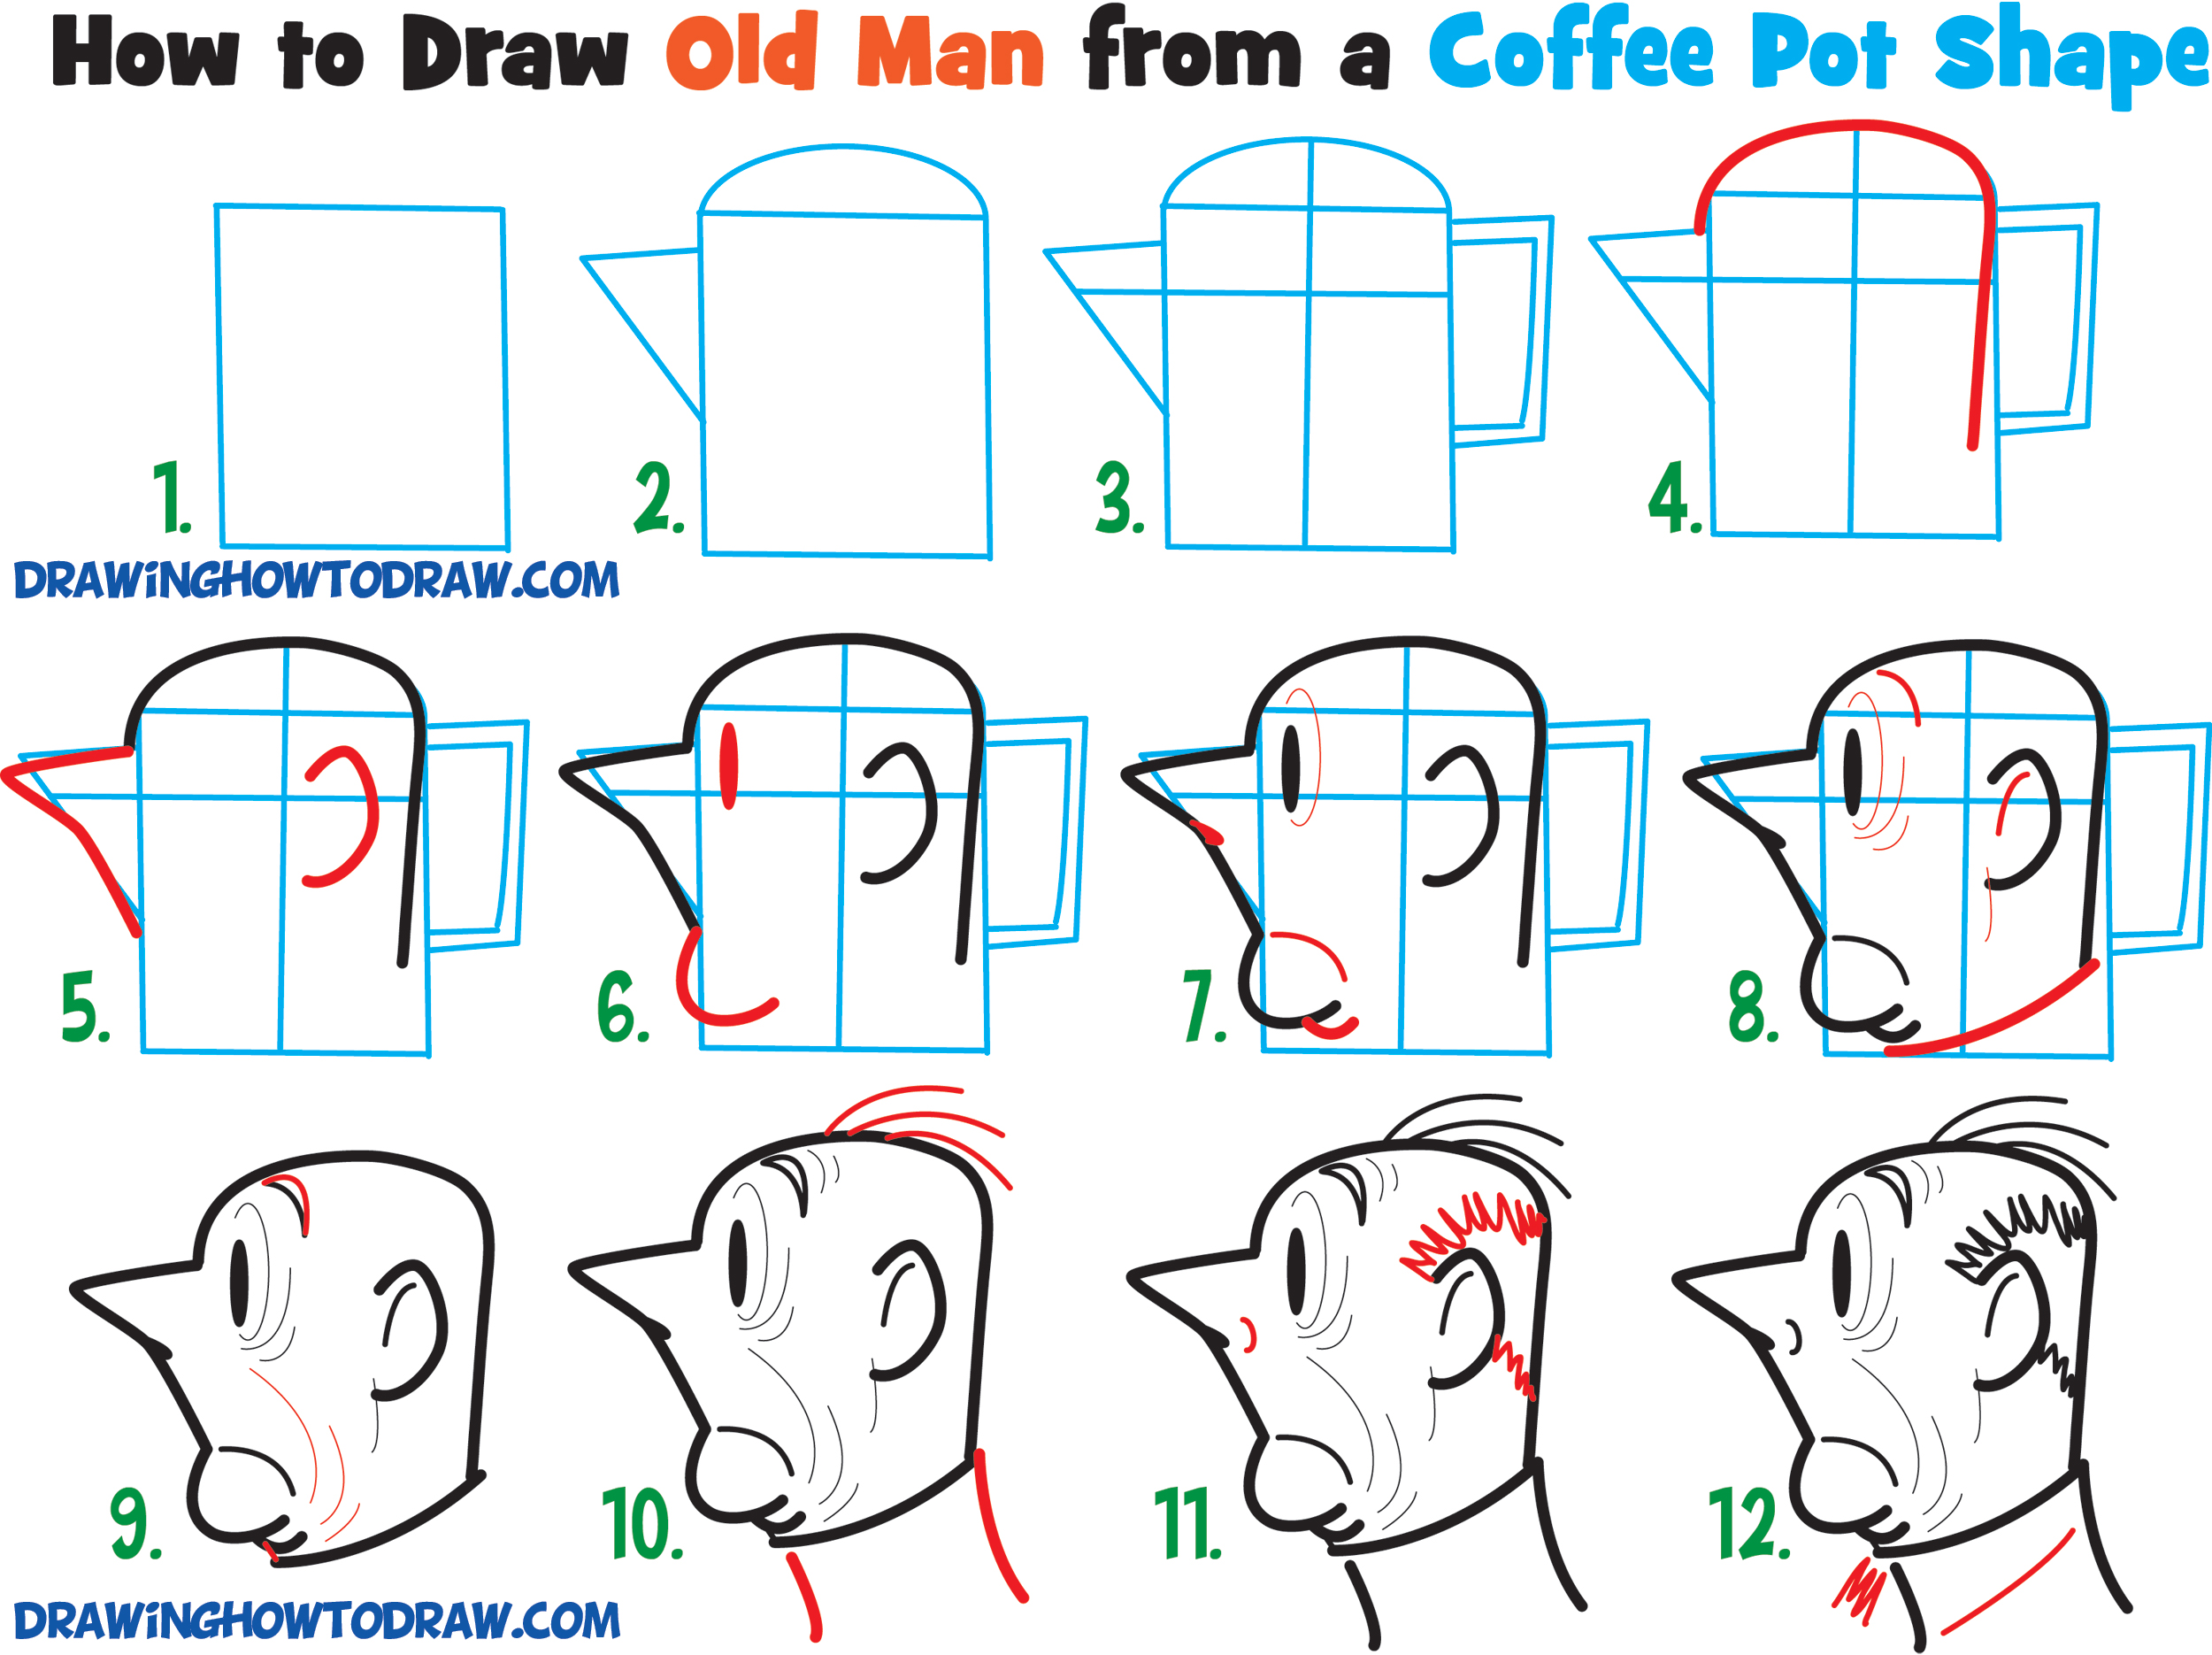 Tutorial #1: Draw a Cartoon Man's Face from the Side / Profile View